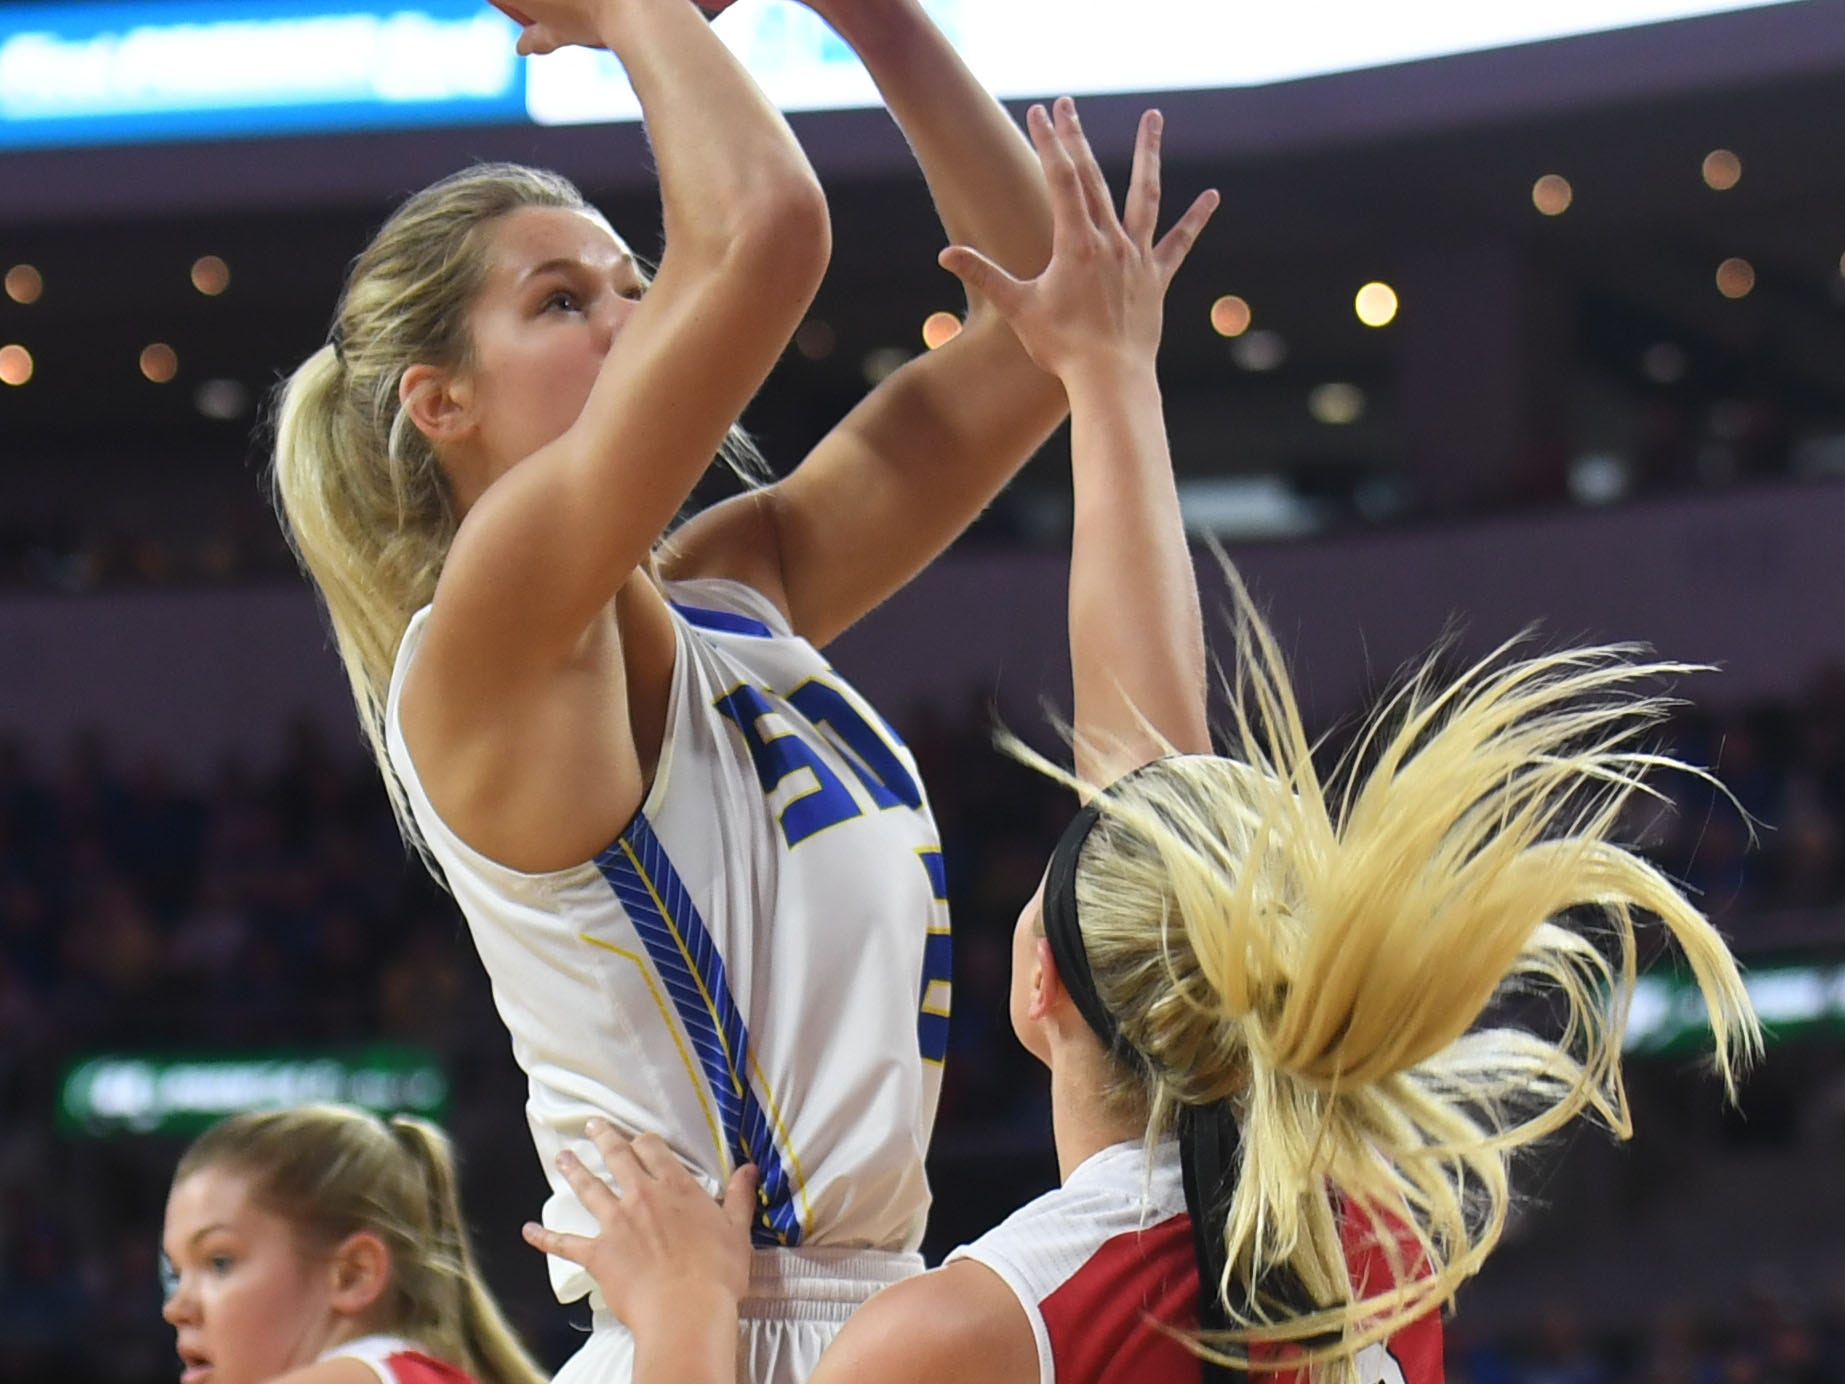 SDSU's Tylee Irwin takes a shot against USD during the game Tuesday, March 12, in the Summit League women's championship at the Denny Sanford Premier Center in Sioux Falls.